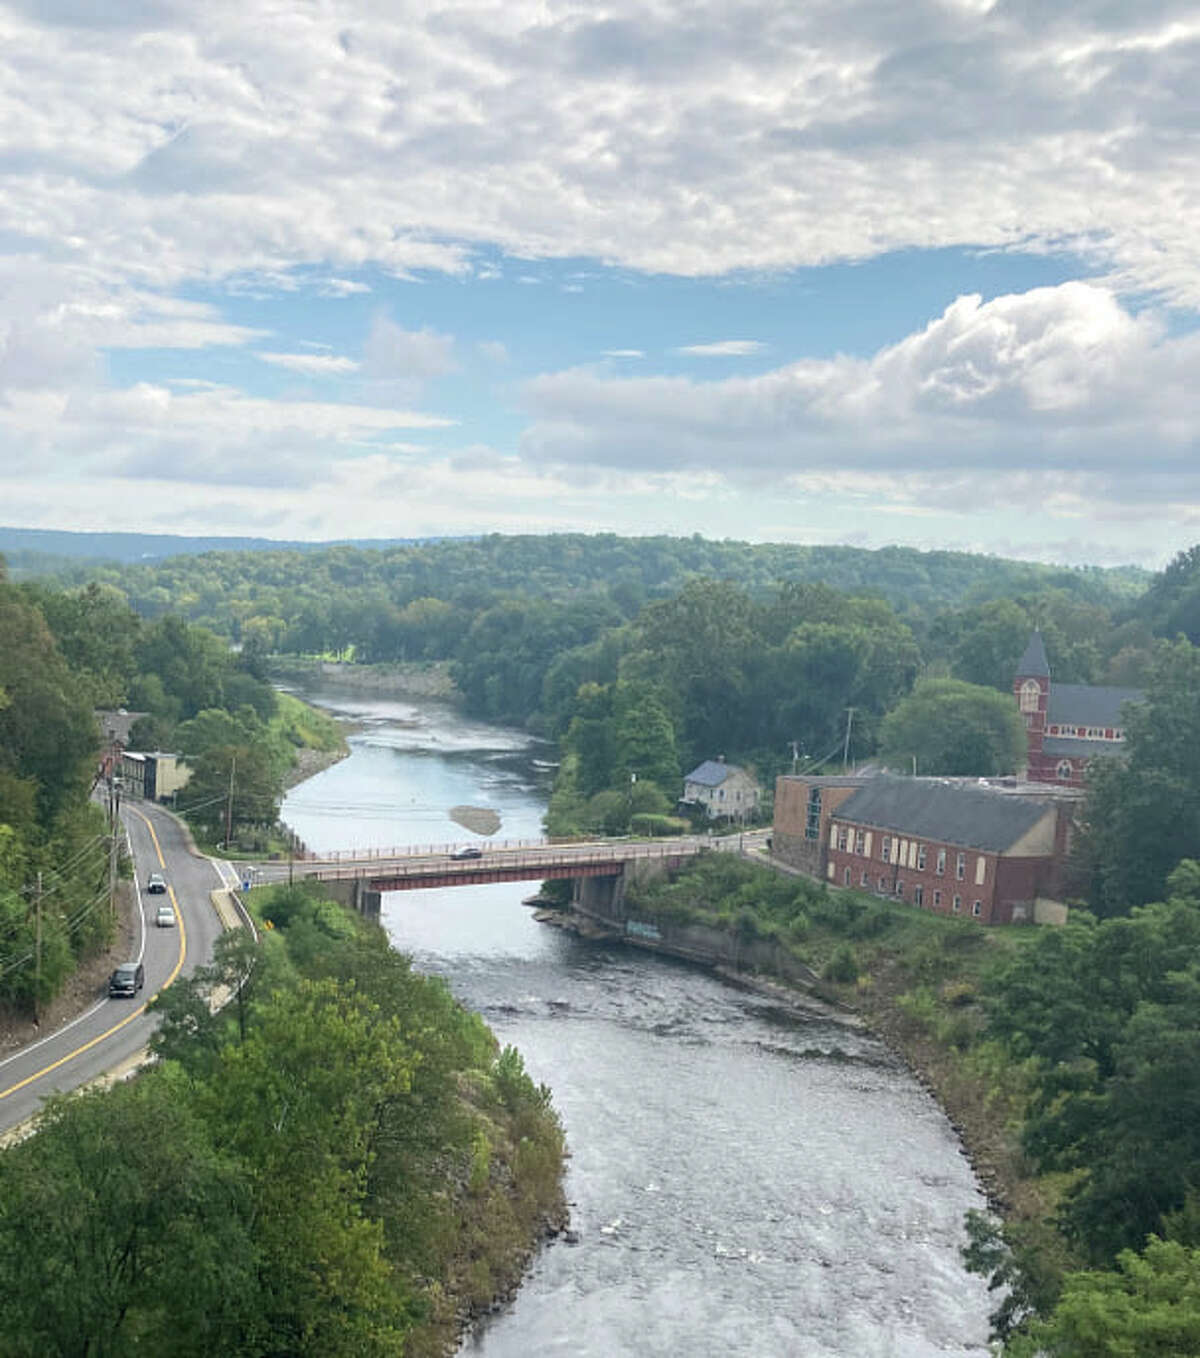 Bikers enjoy beautiful views along the Empire State Trail, including of the Rondout Creek pictured here.